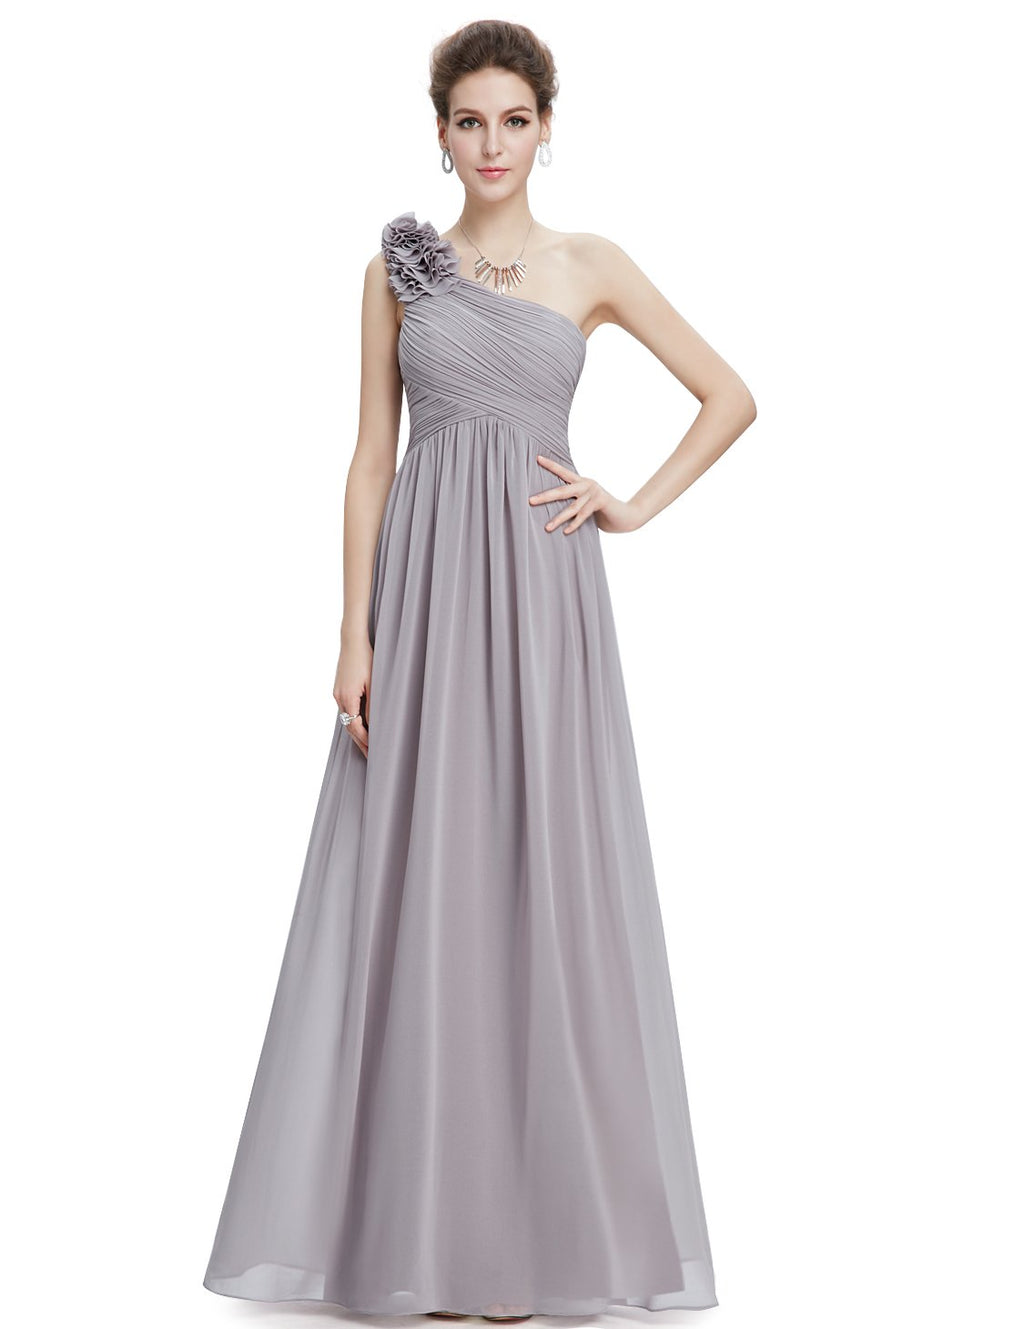 Floral Shoulder One Shoulder Evening Dress Grey